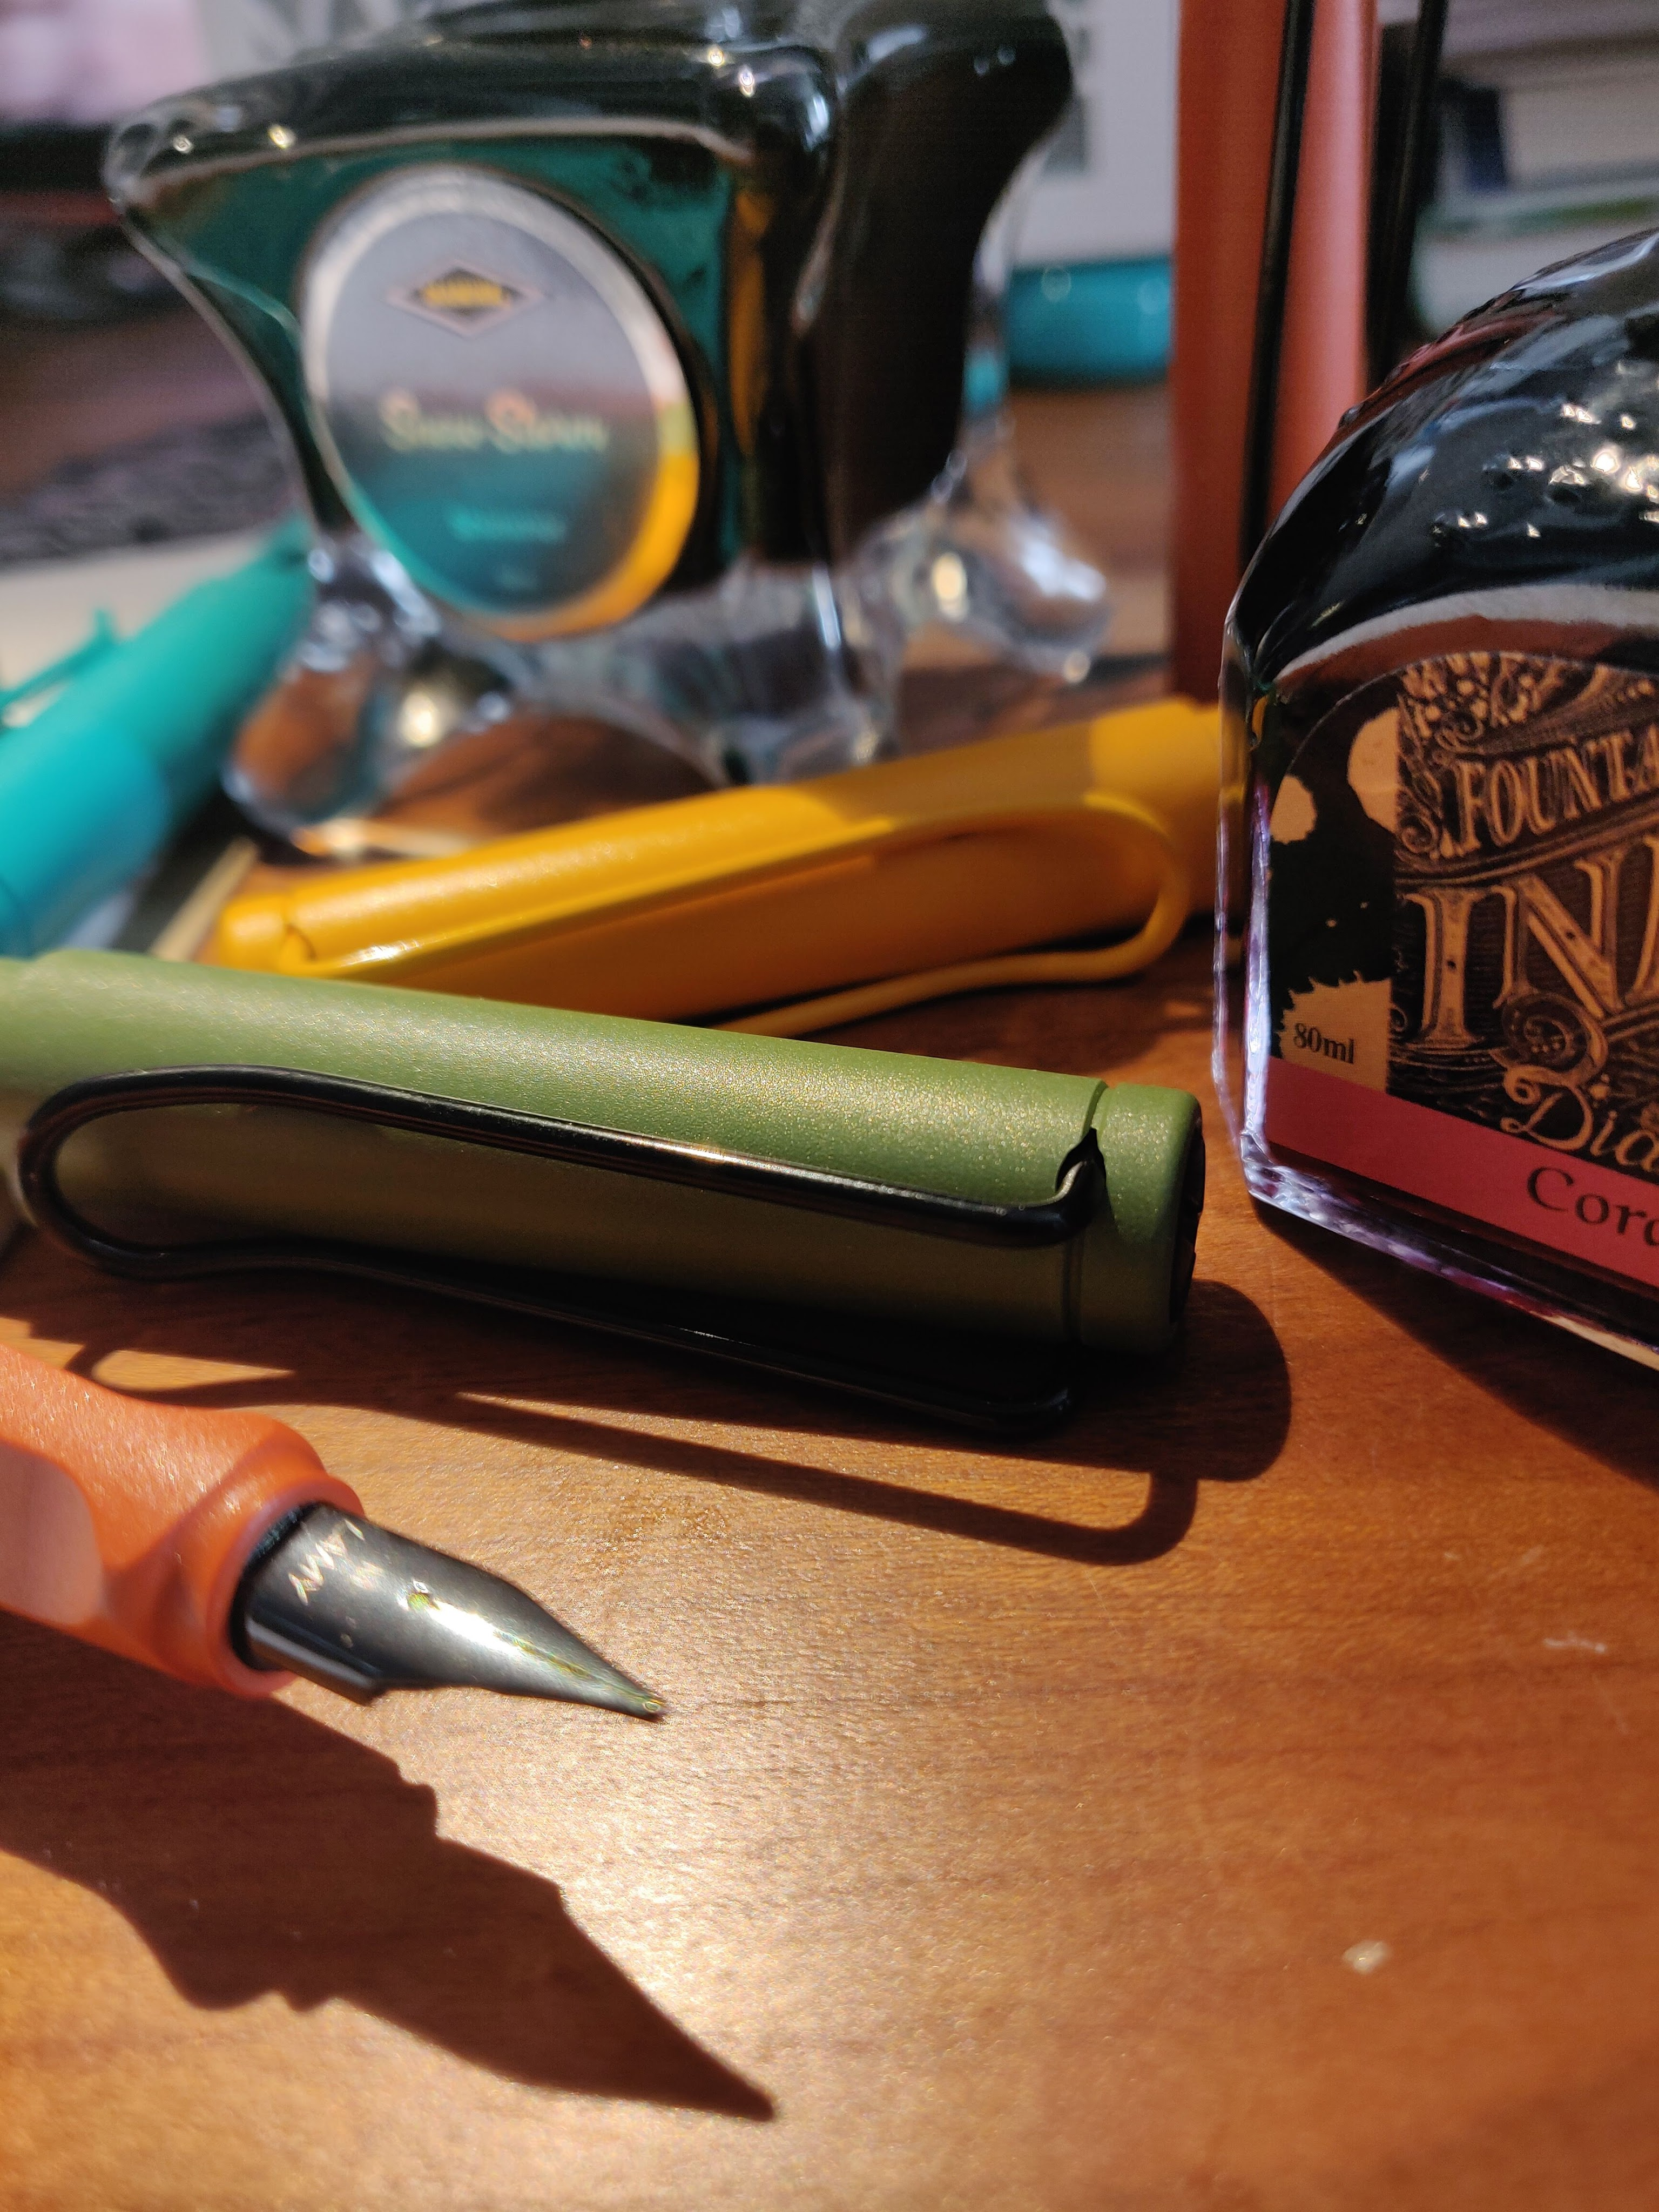 Fountain pens and bottles of ink on a desk.